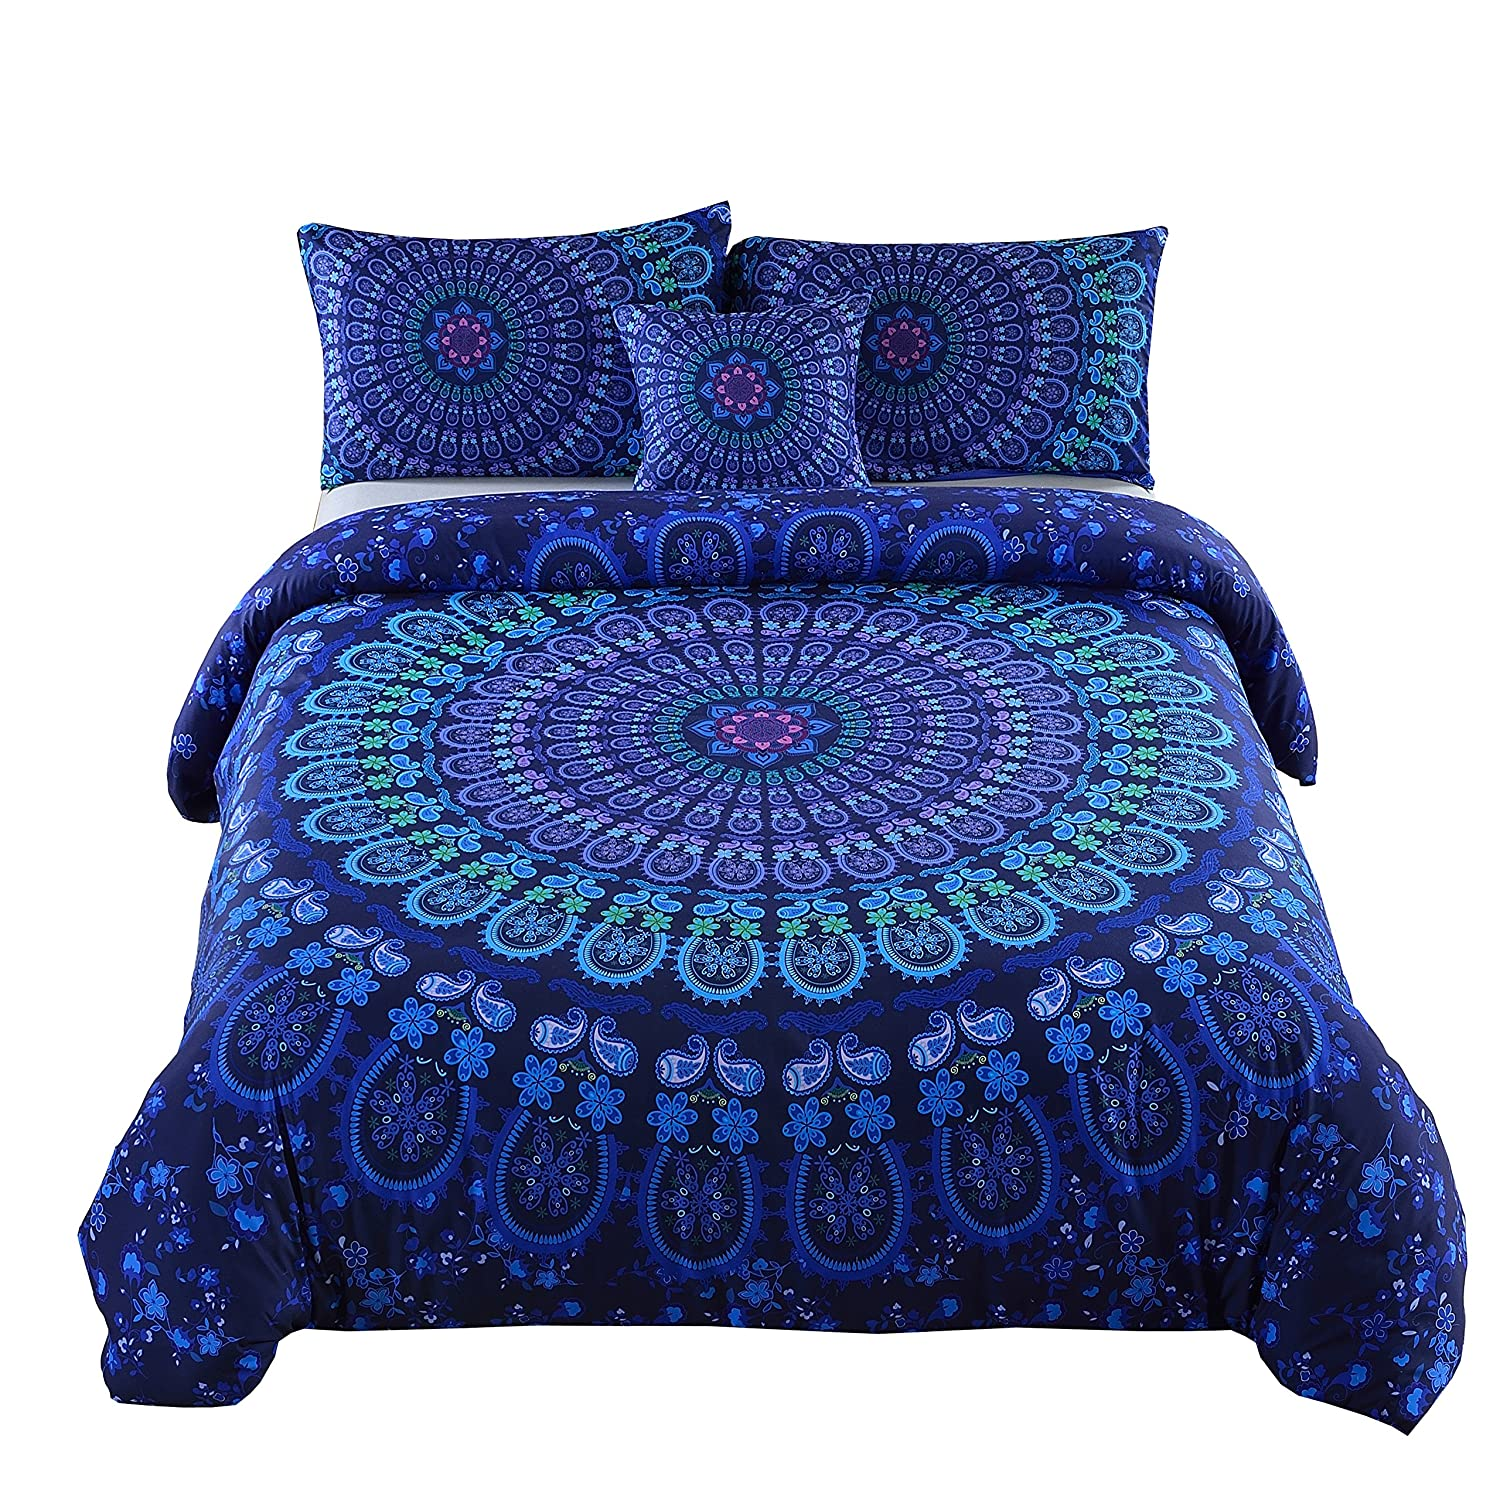 MEILA Duvet Cover Set Luxury Soft Microfiber Bedding Sets Bohemian Mandala Pattern Bedclothes , Twin(68inx 86in), 4 Pieces (1 Duvet Cover+ 2 Pillowcase+ 1 Throw Pillow Case)